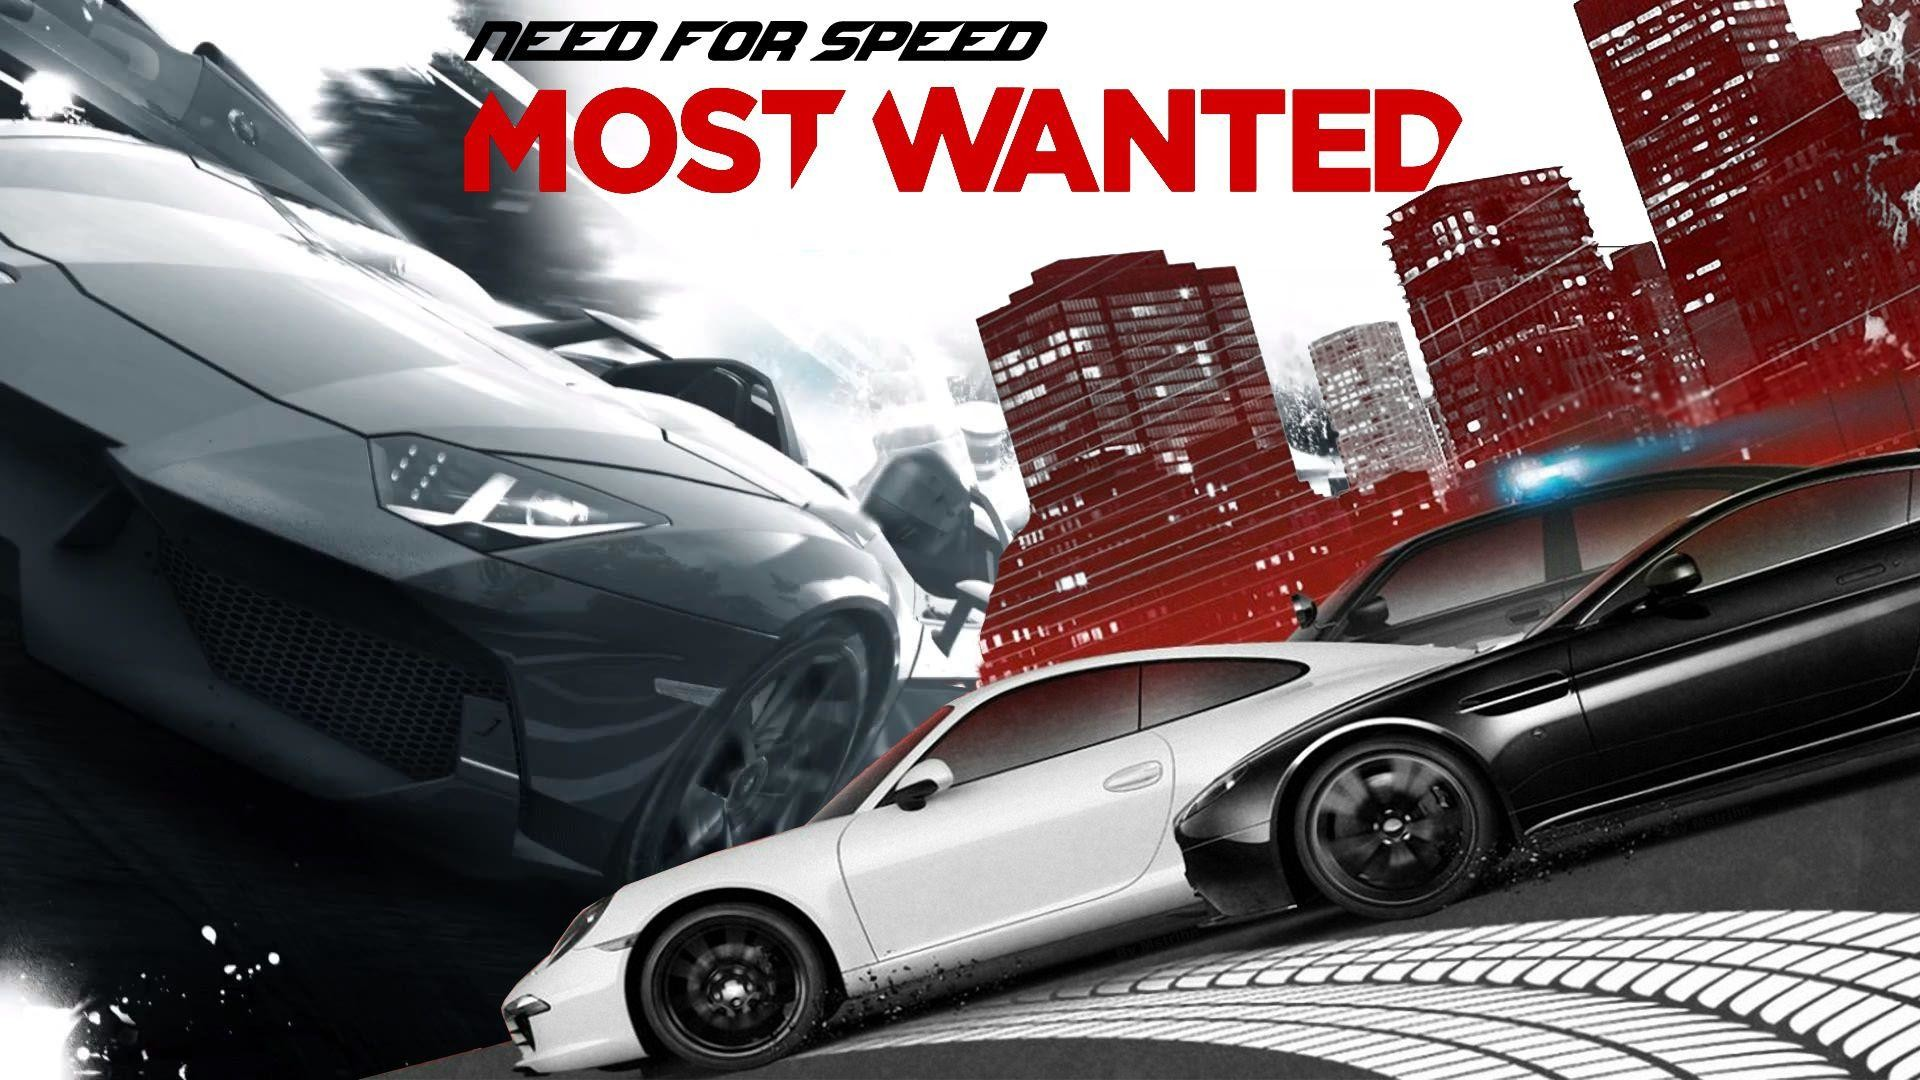 Need For Speed Most Wanted Cars Wallpapers Wallpapertag